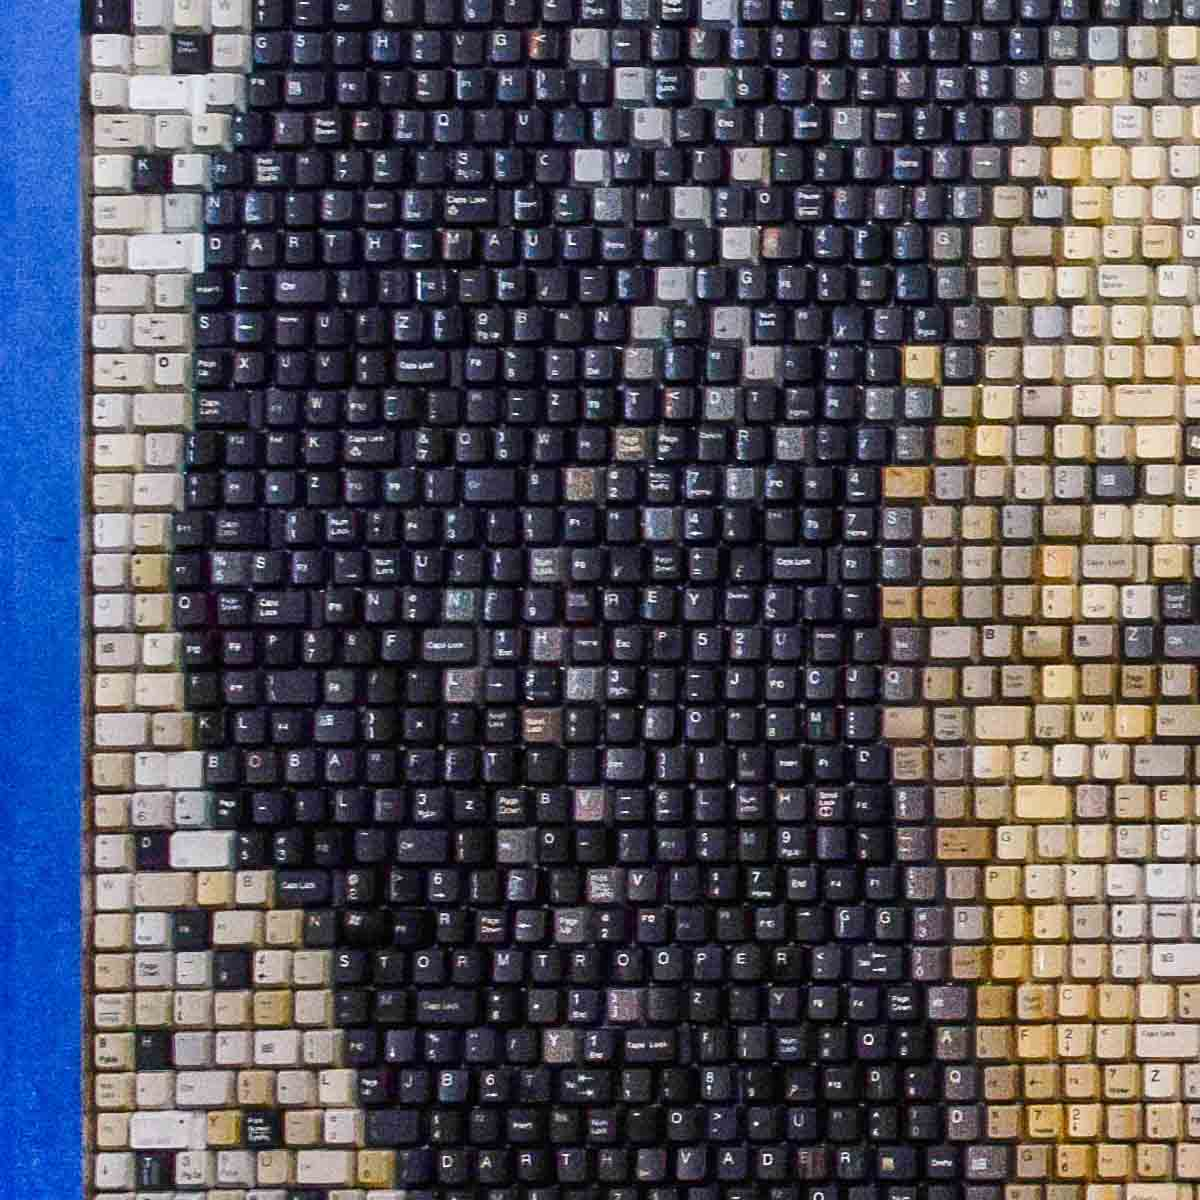 Princess Leia Keyboard Portrait Is Filled With Hidden